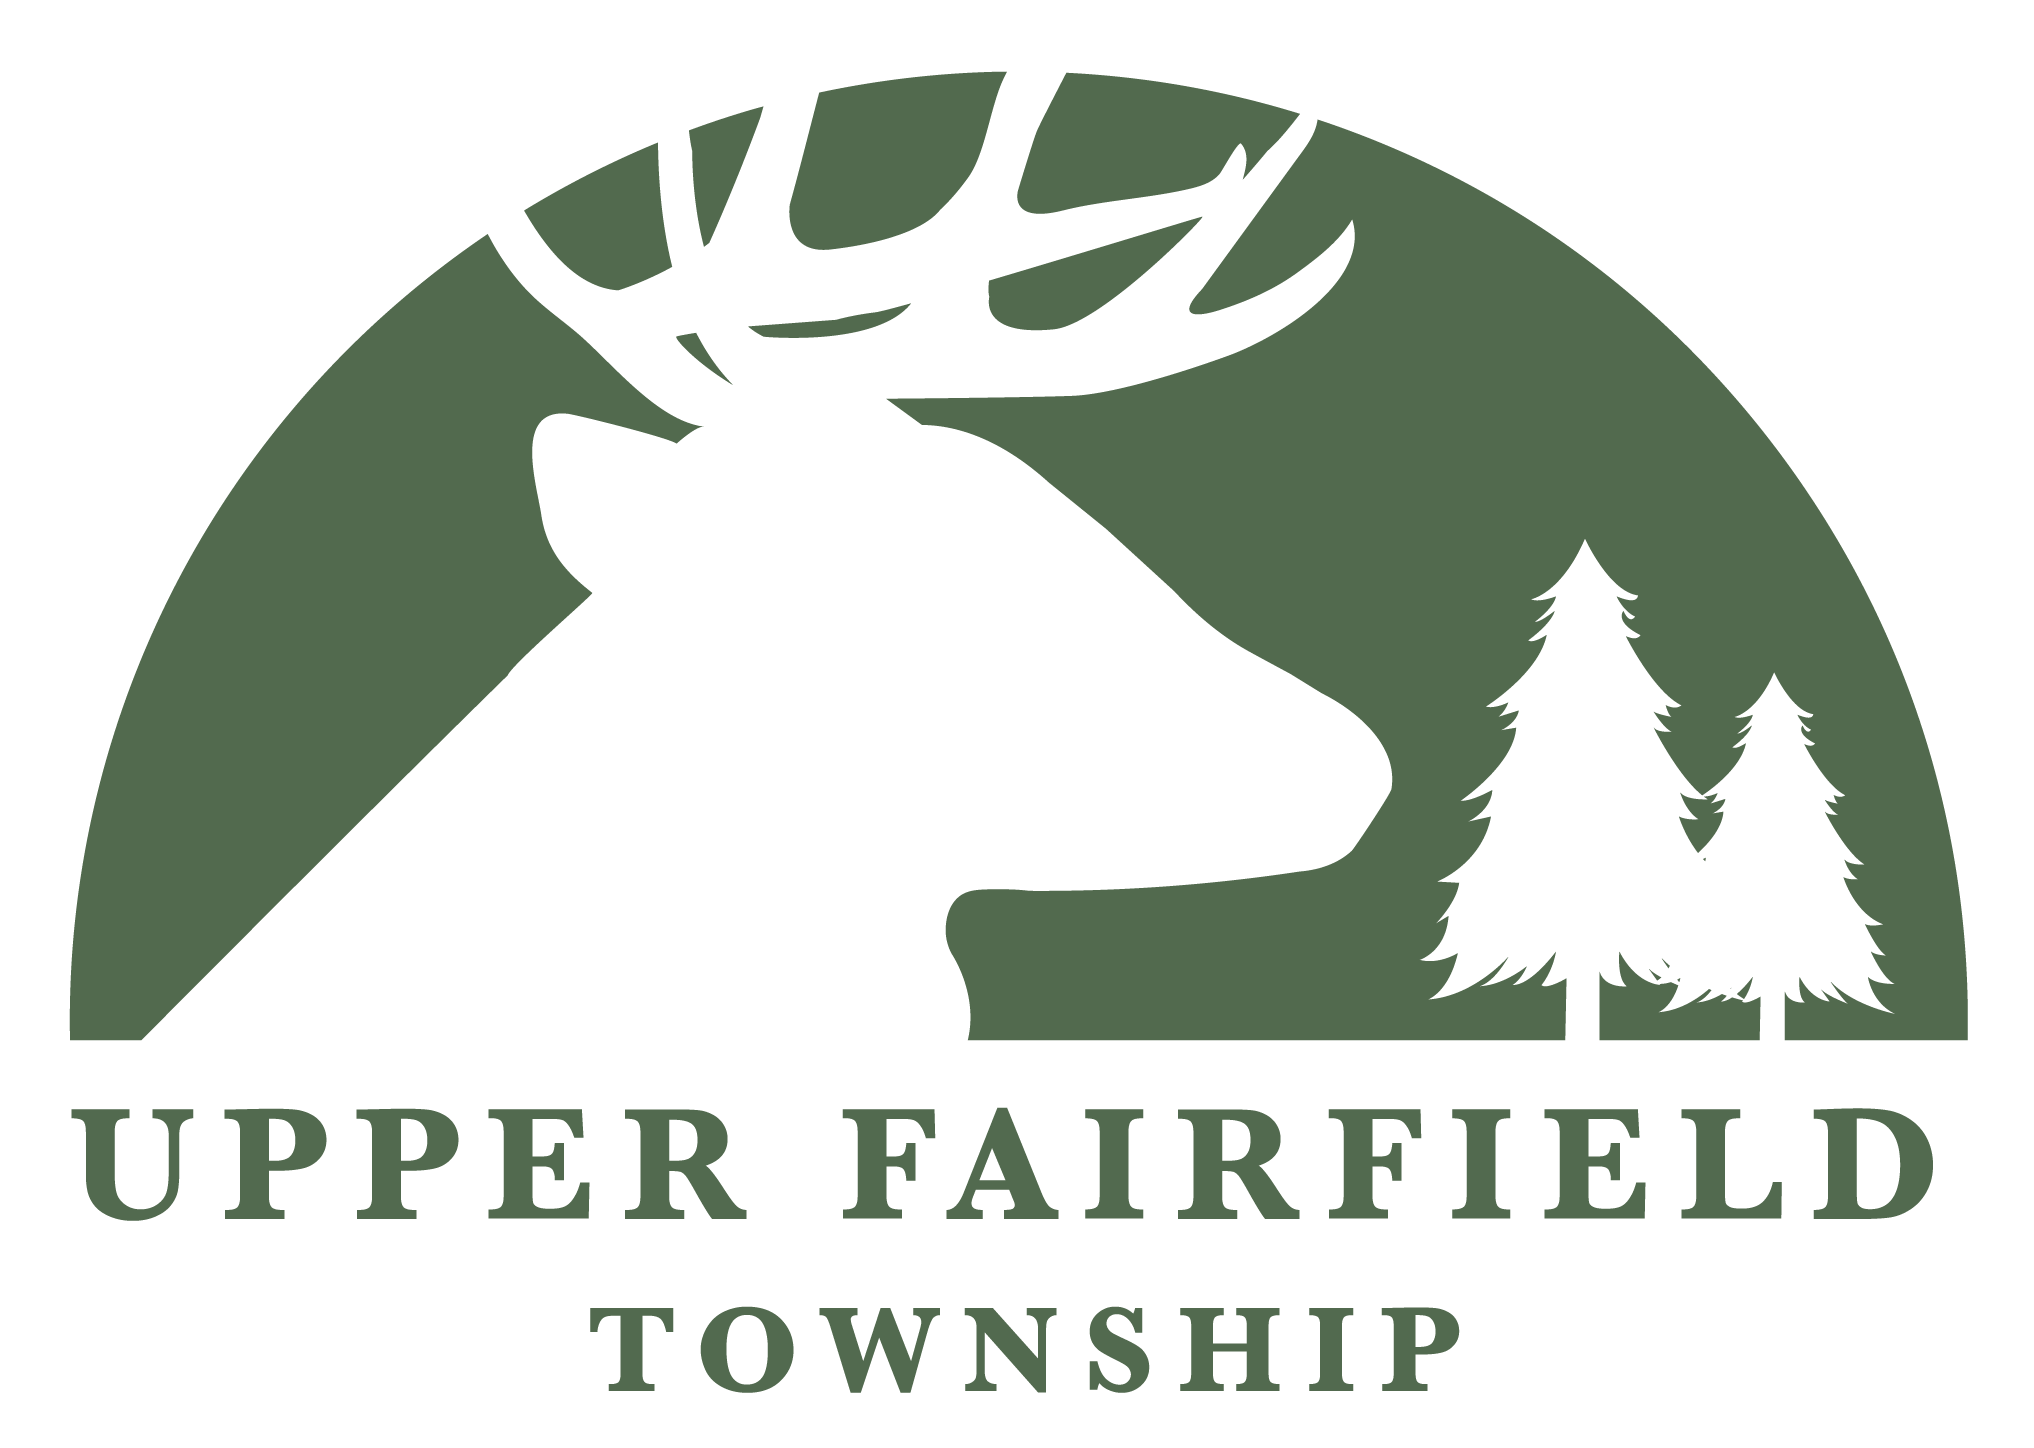 Upper Fairfield Township